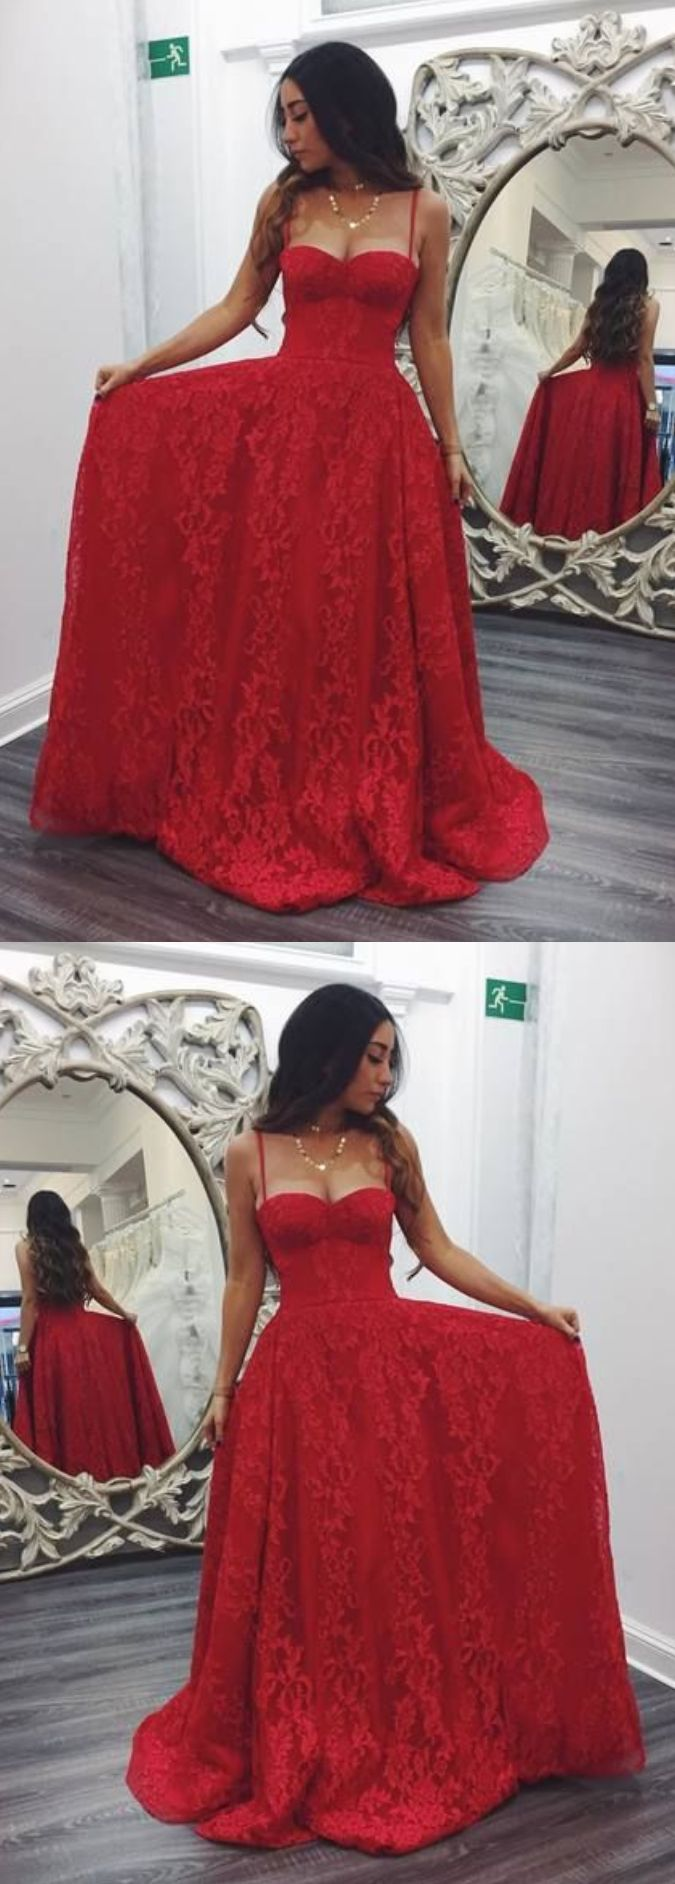 Sexy A-Line Spaghetti Straps Prom Dresses,Long Prom Dresses,Green Prom Dresses, Evening Dress Prom Gowns, Formal Women Dress,Prom Dress